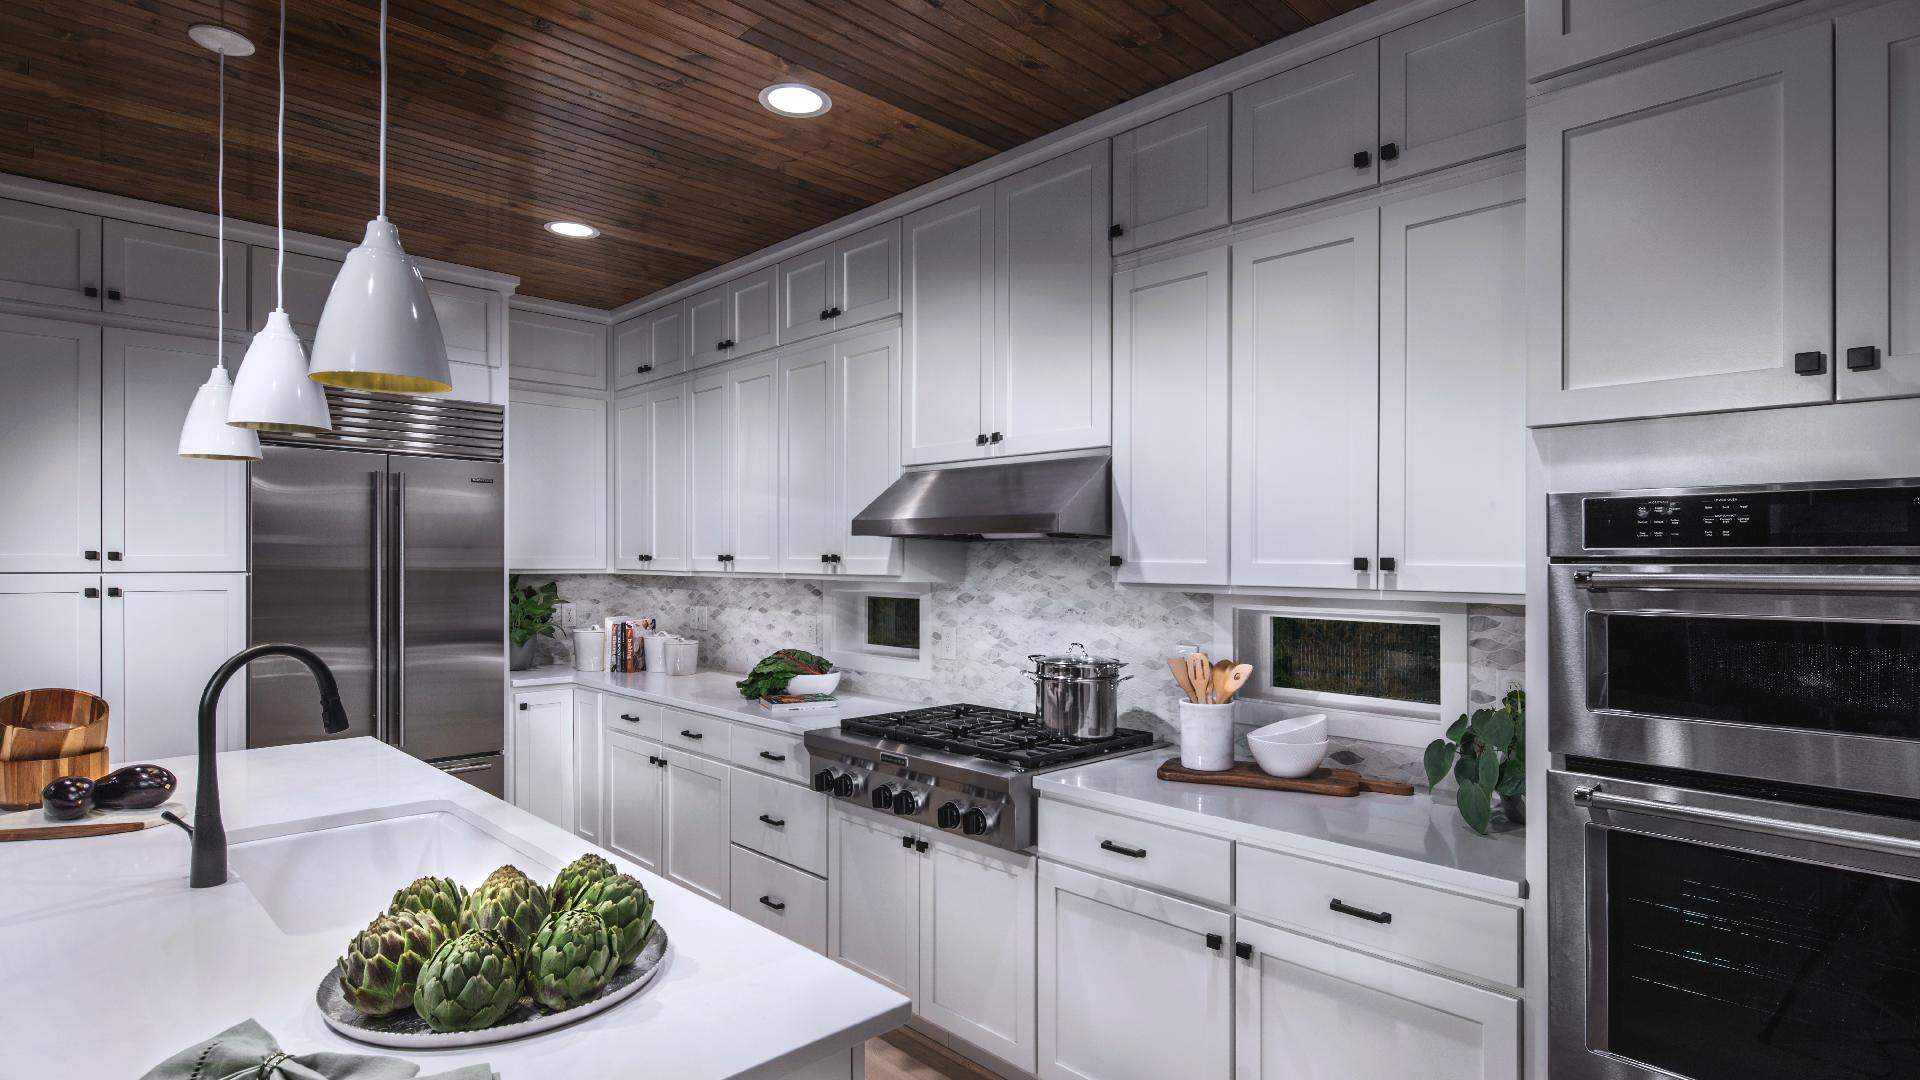 Well designed kitchen offers plenty of cabinet space